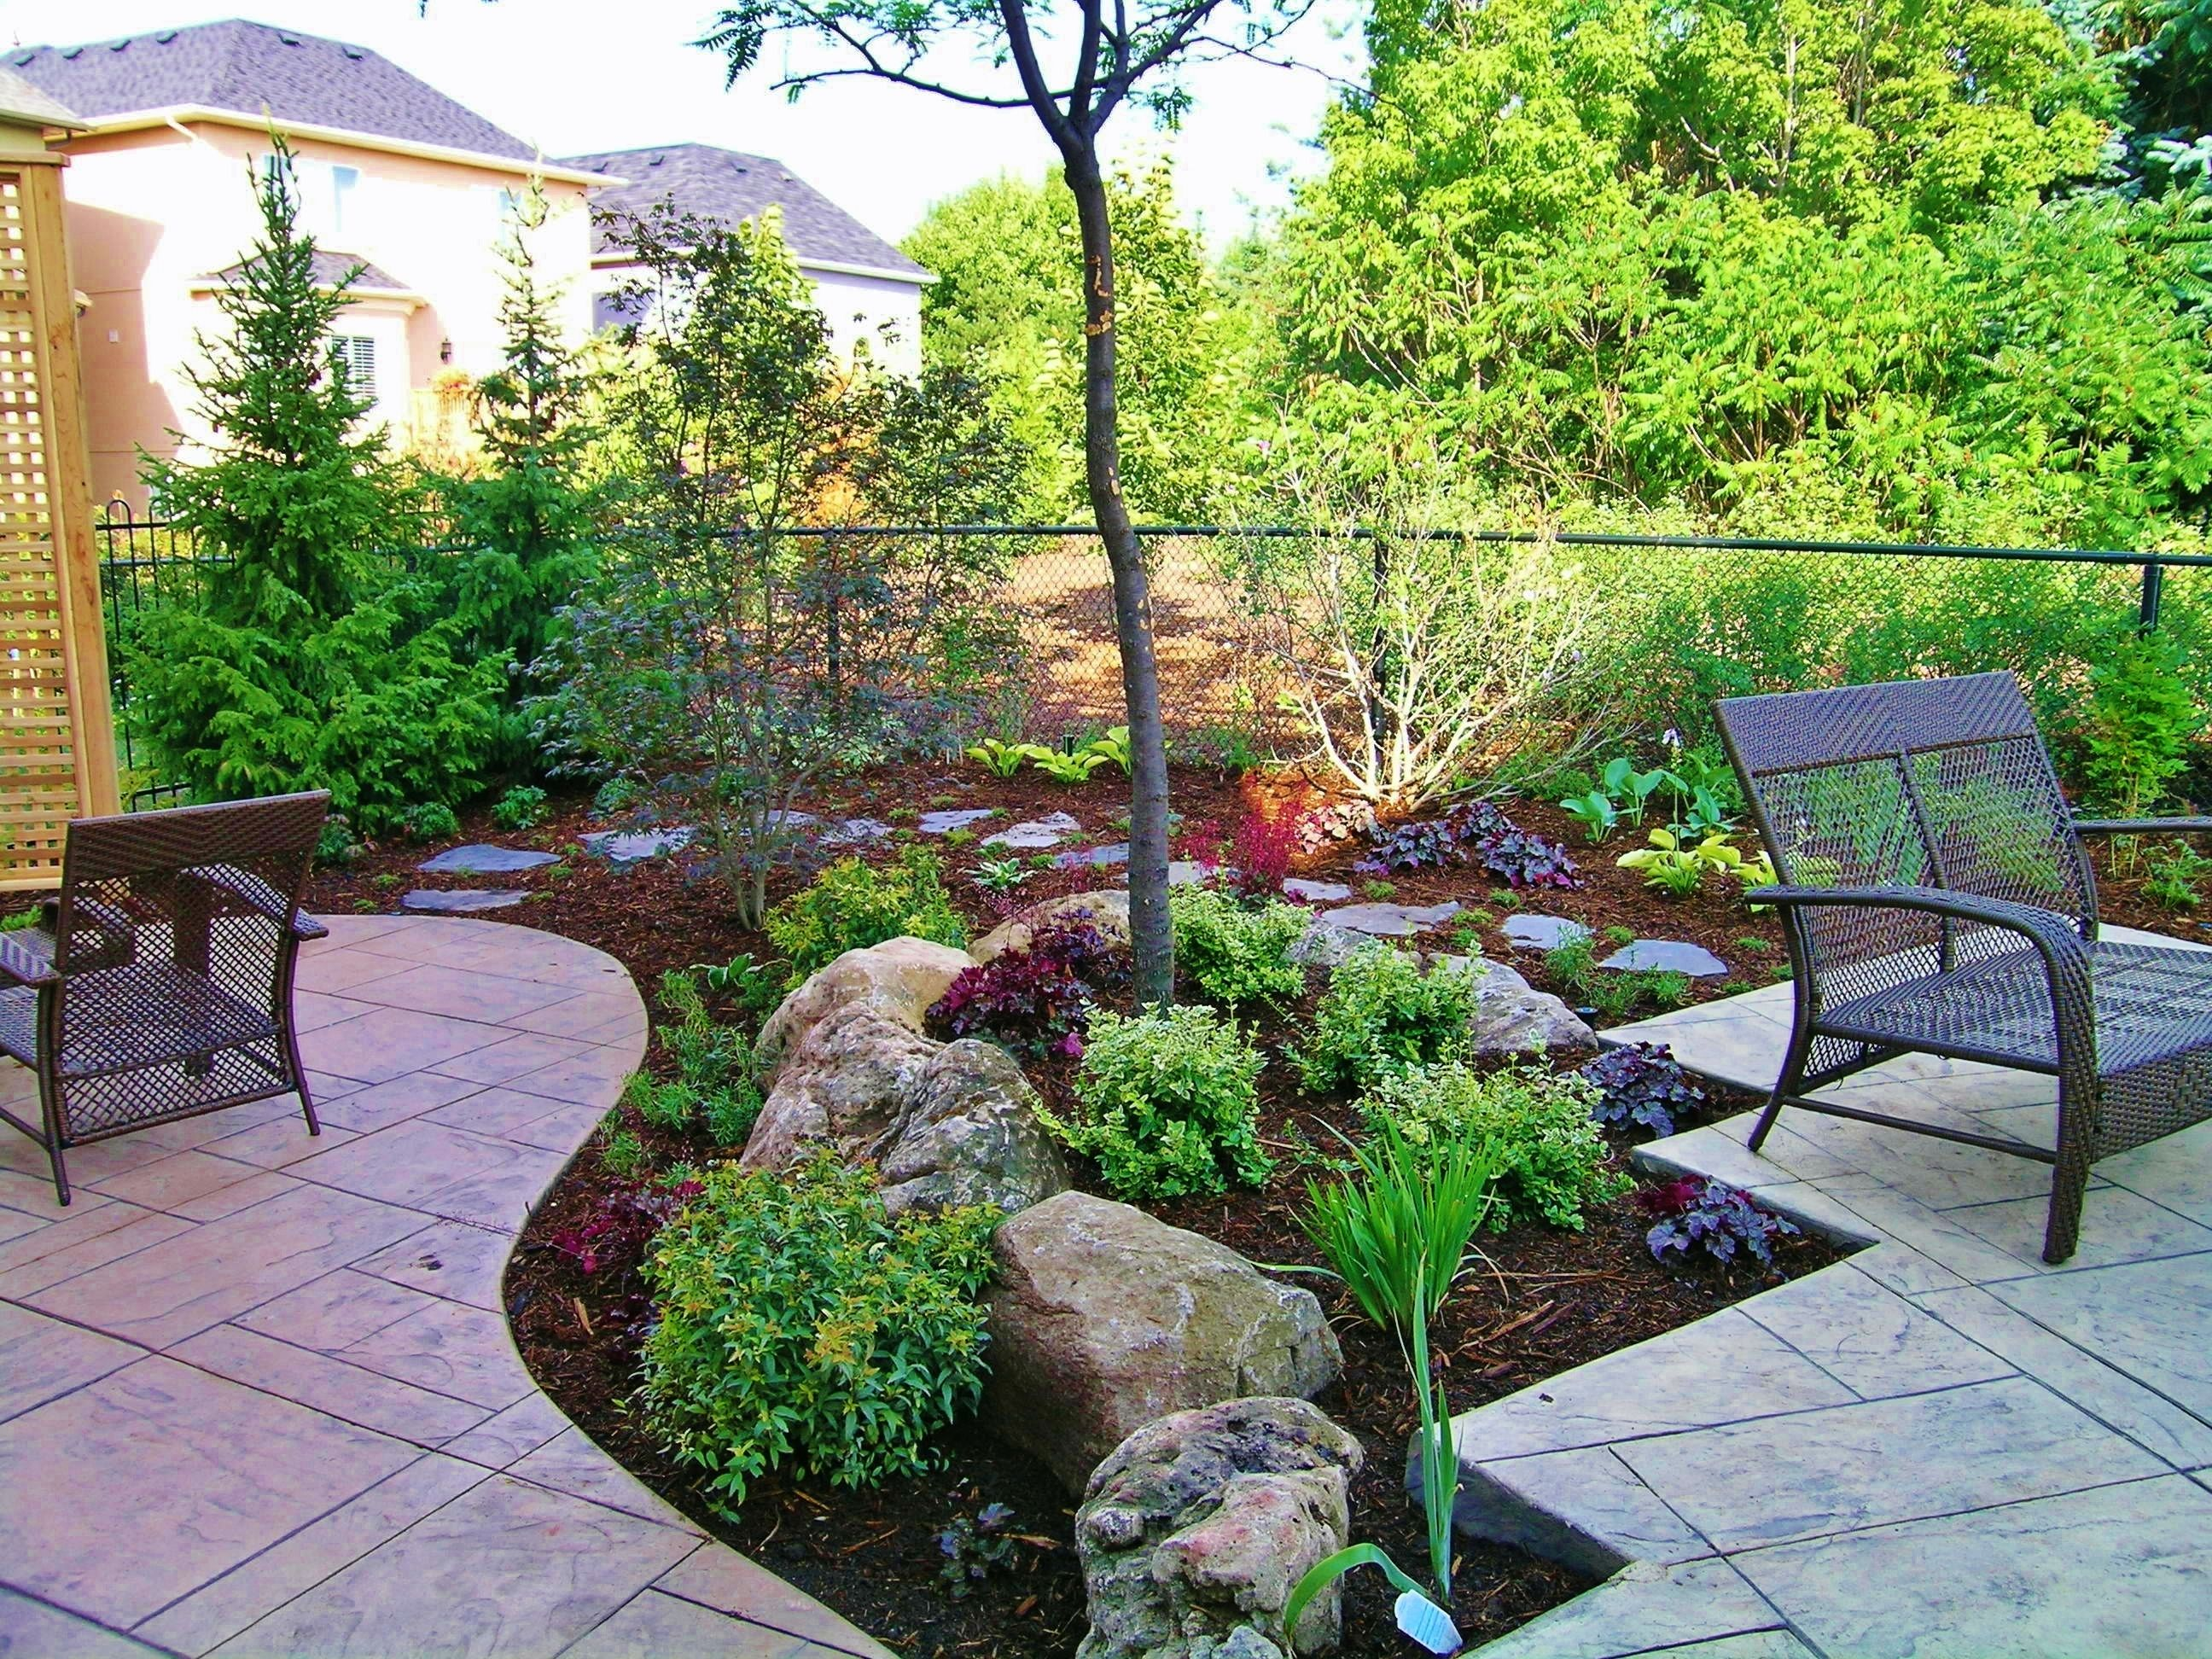 Backyard without grass  Backyard landscaping plans, Small